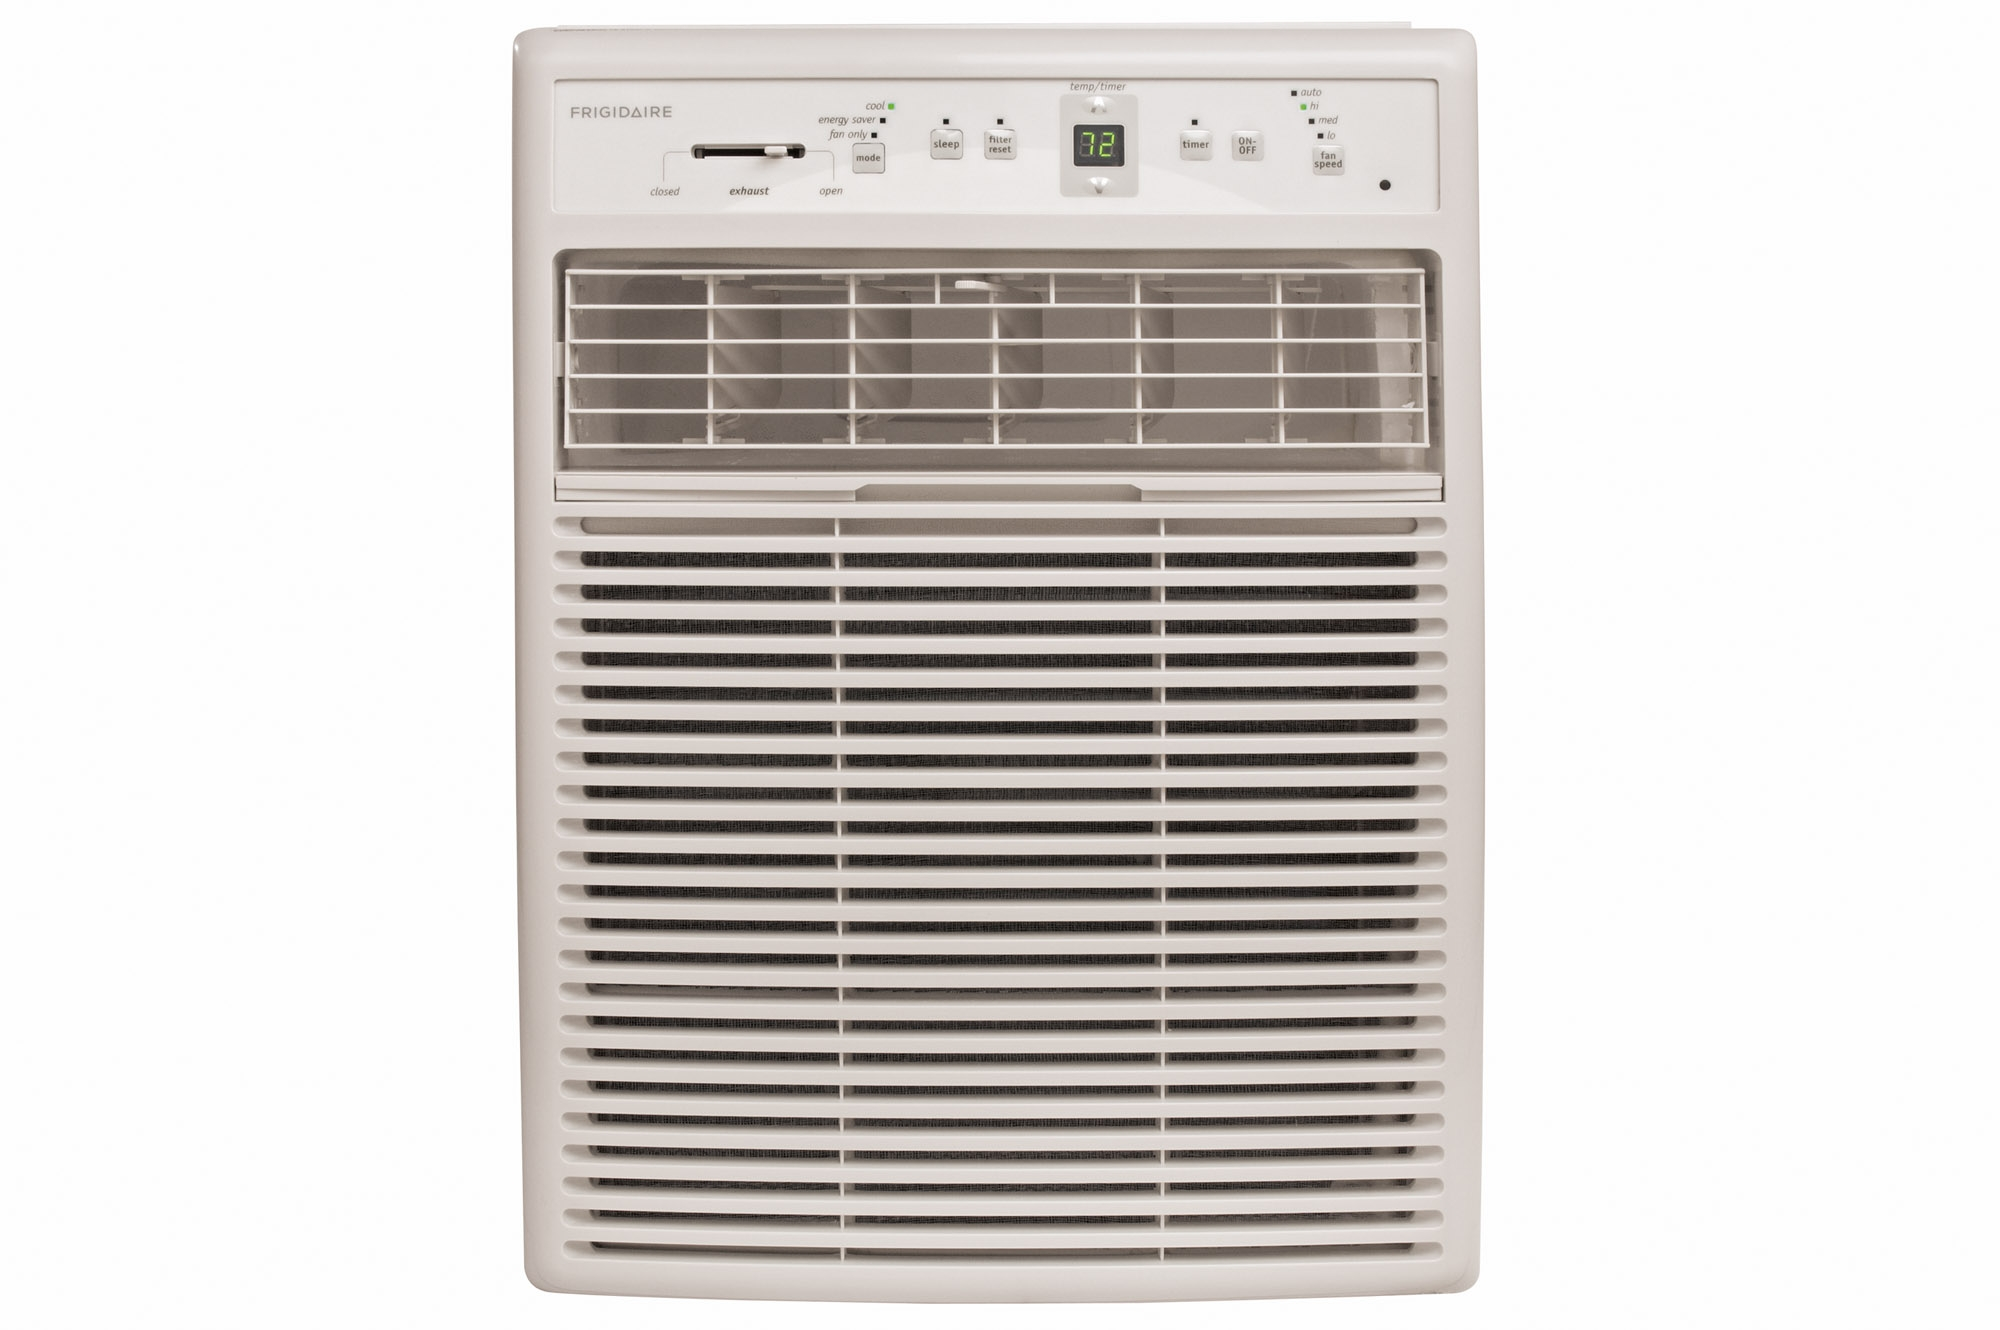 Model: FRA084KT7 Style: 8 000 BTU Slider Casement Air Conditioner #5C8249